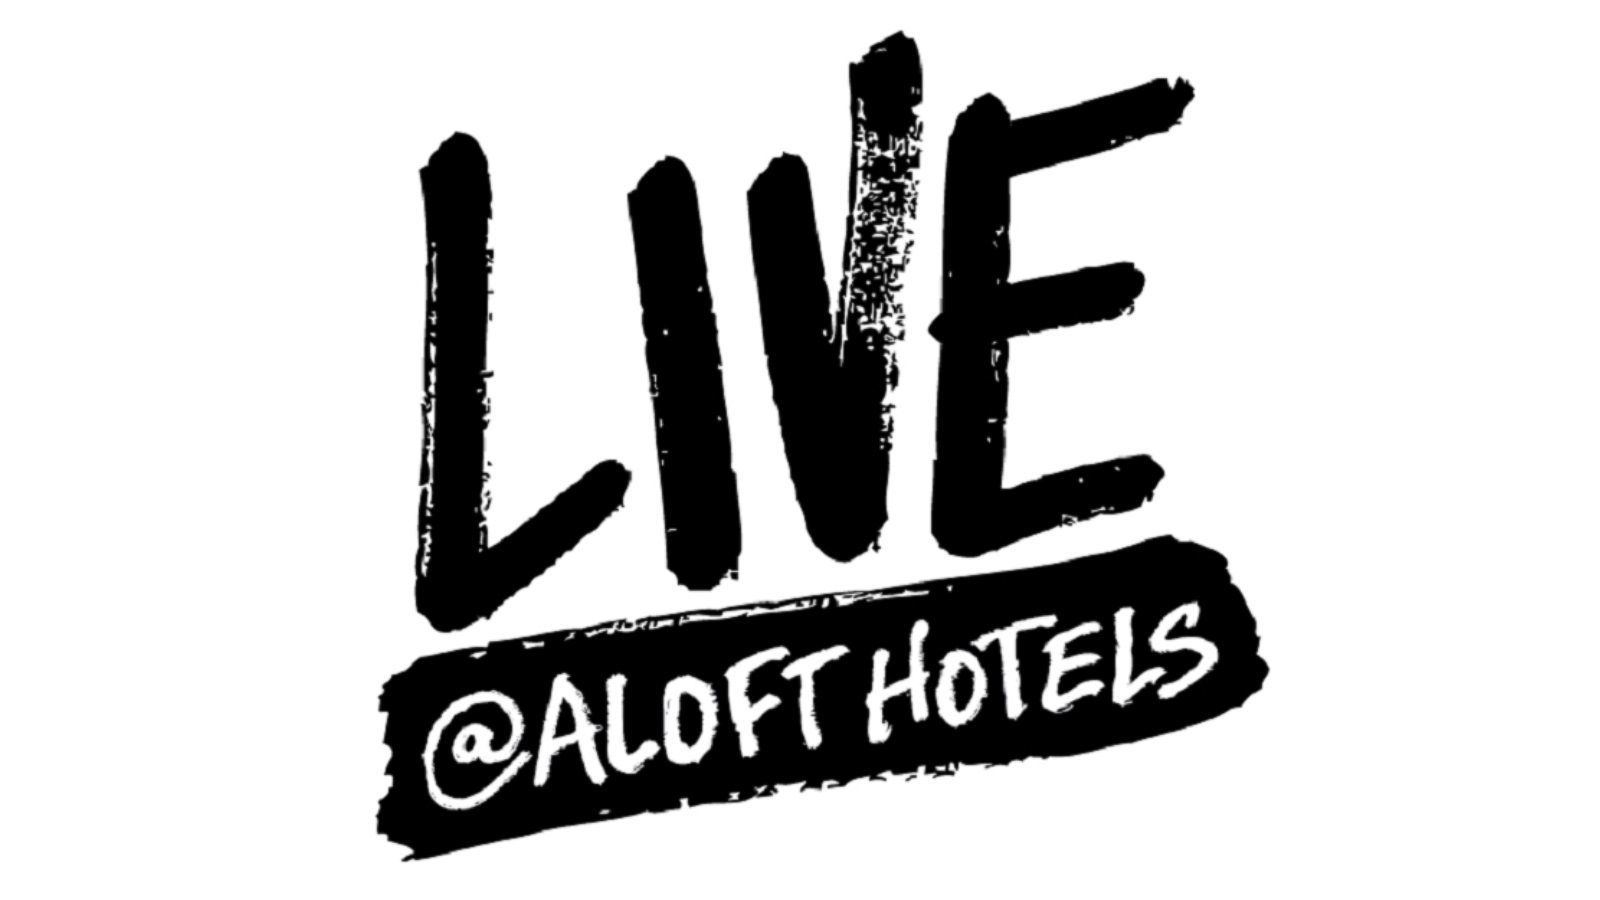 San Antonio Bars - Live At Aloft Hotels